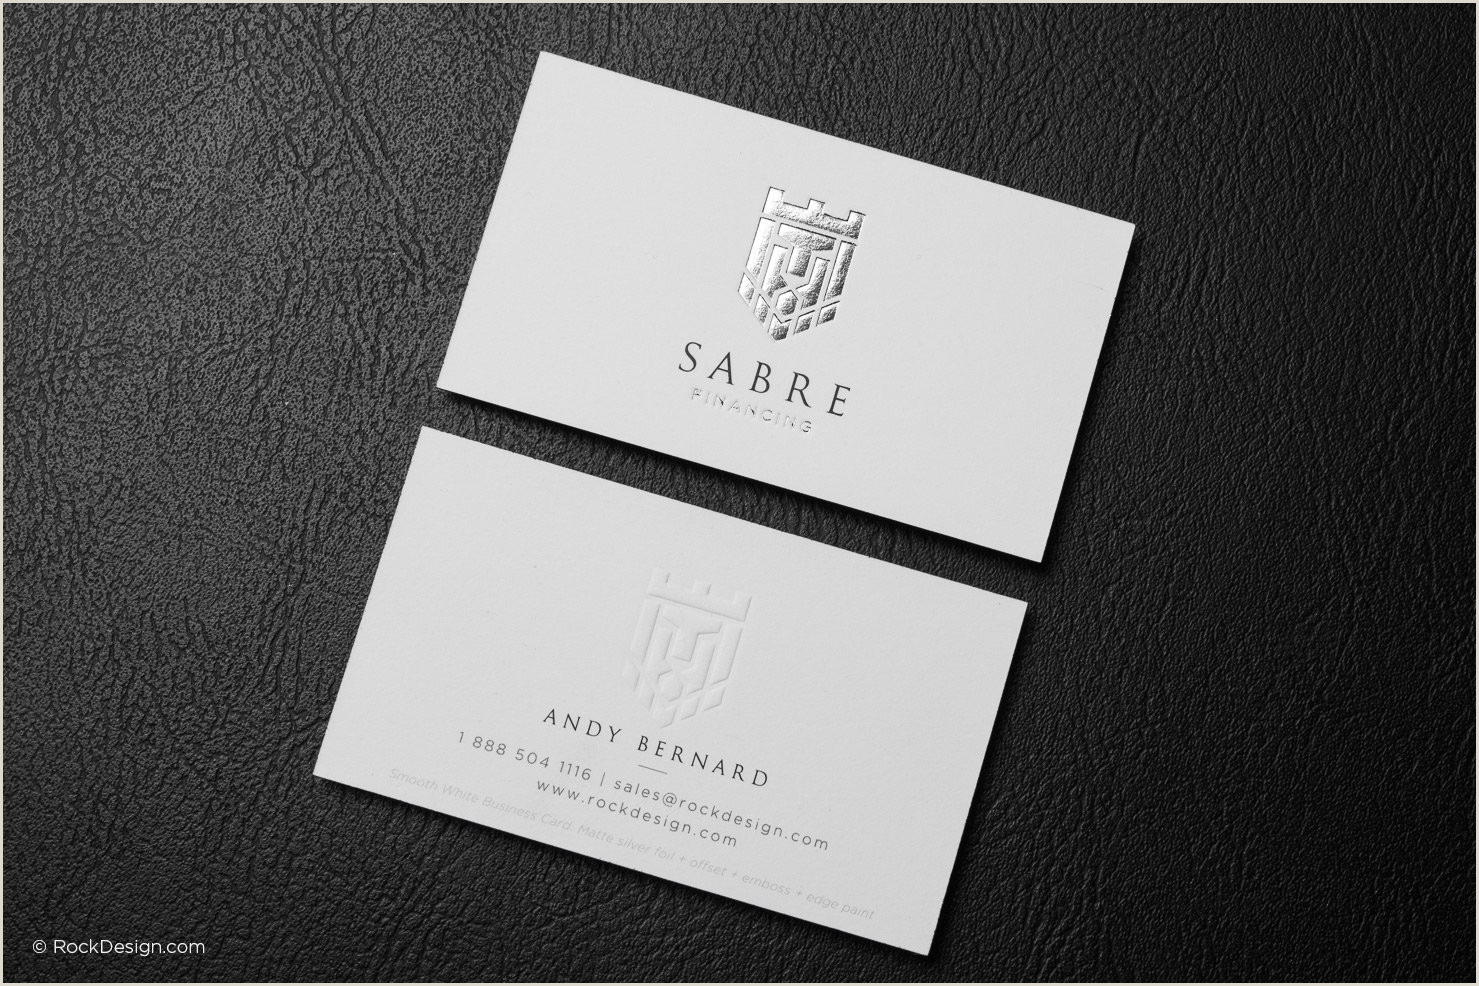 Post It Business Cards Free Emboss & Foil Business Card Templates